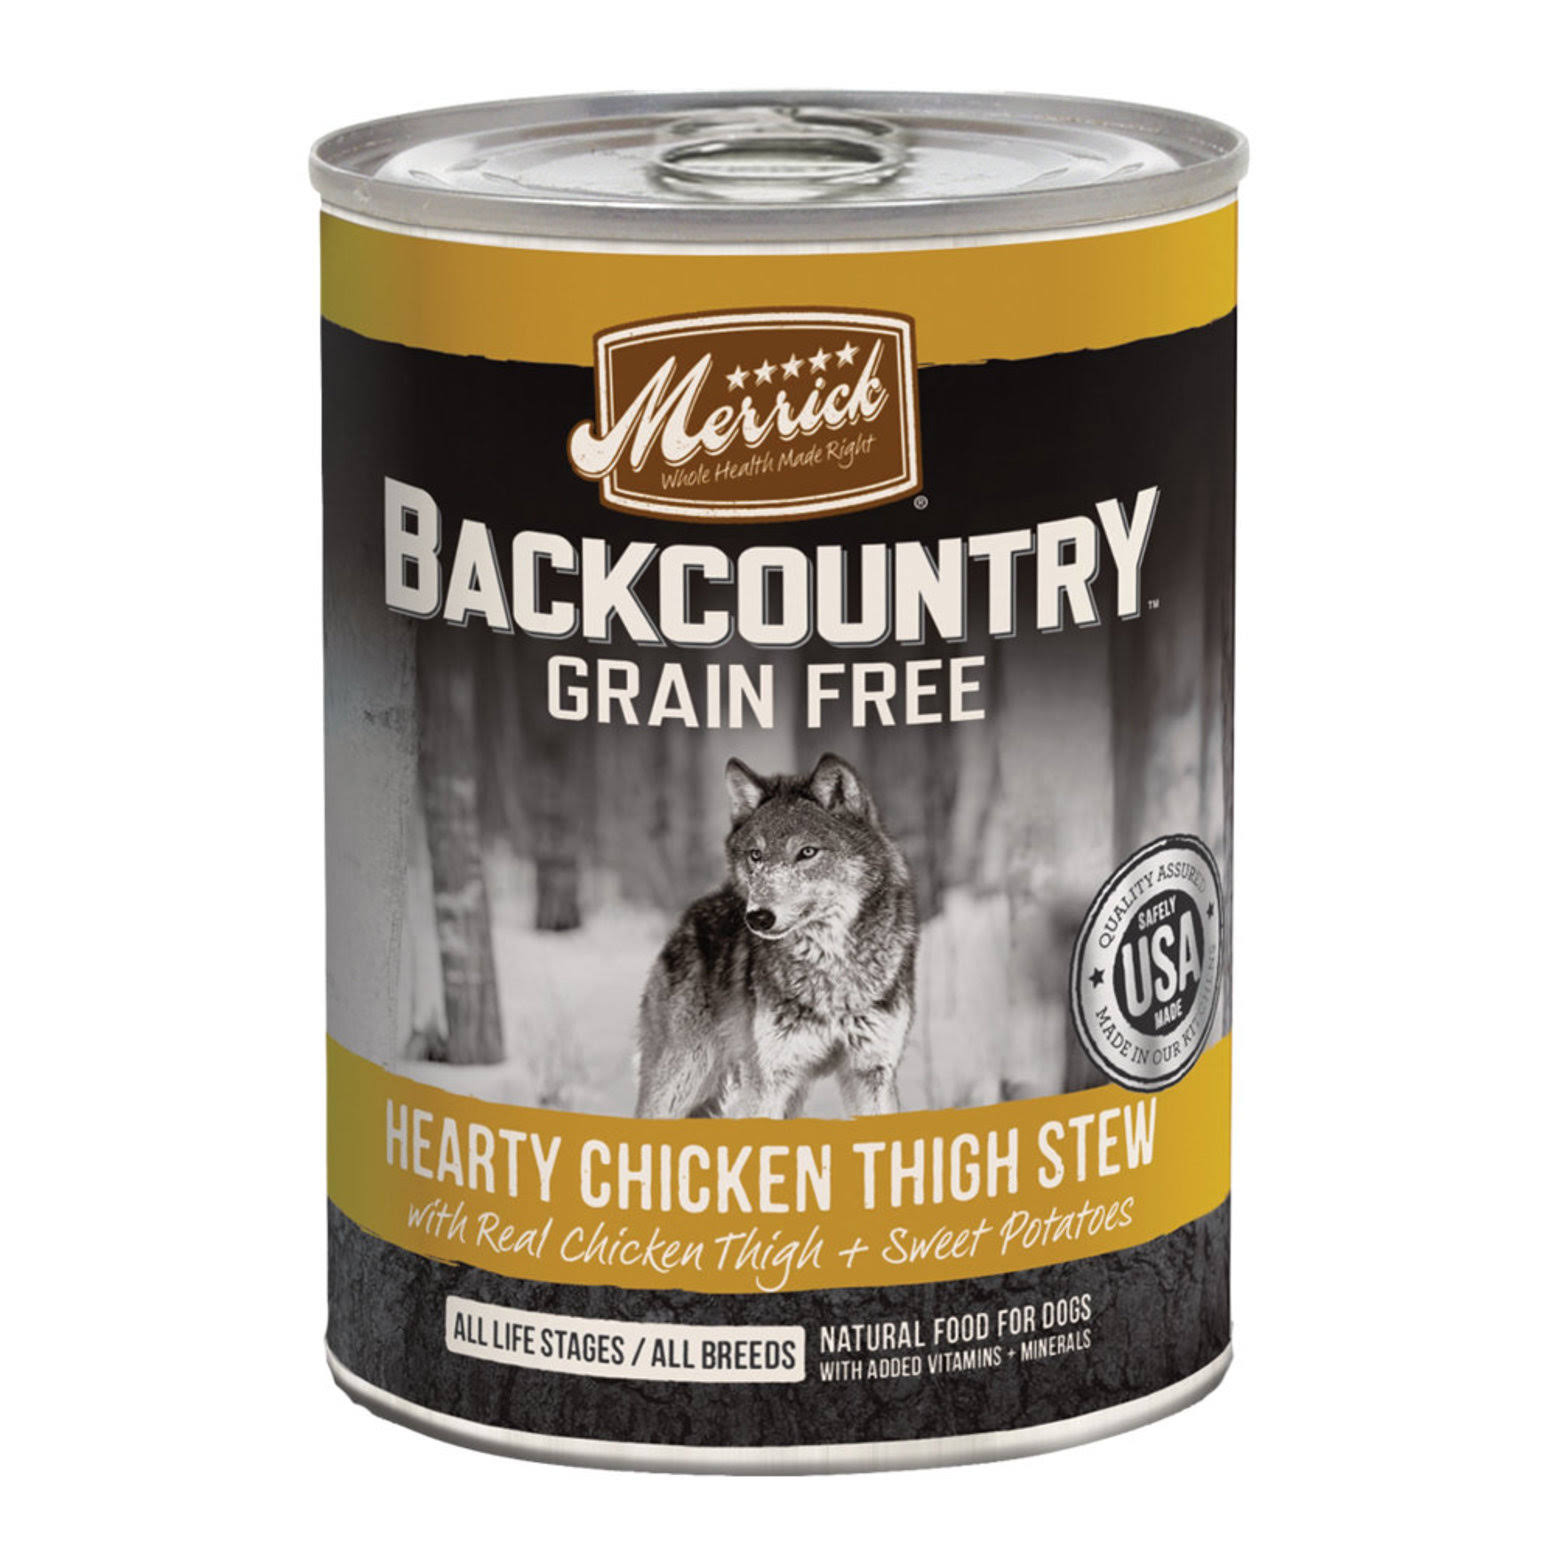 Merrick Backcountry Grain Canned Dog Food - Hearty Chicken Thigh Stew, 12.7oz